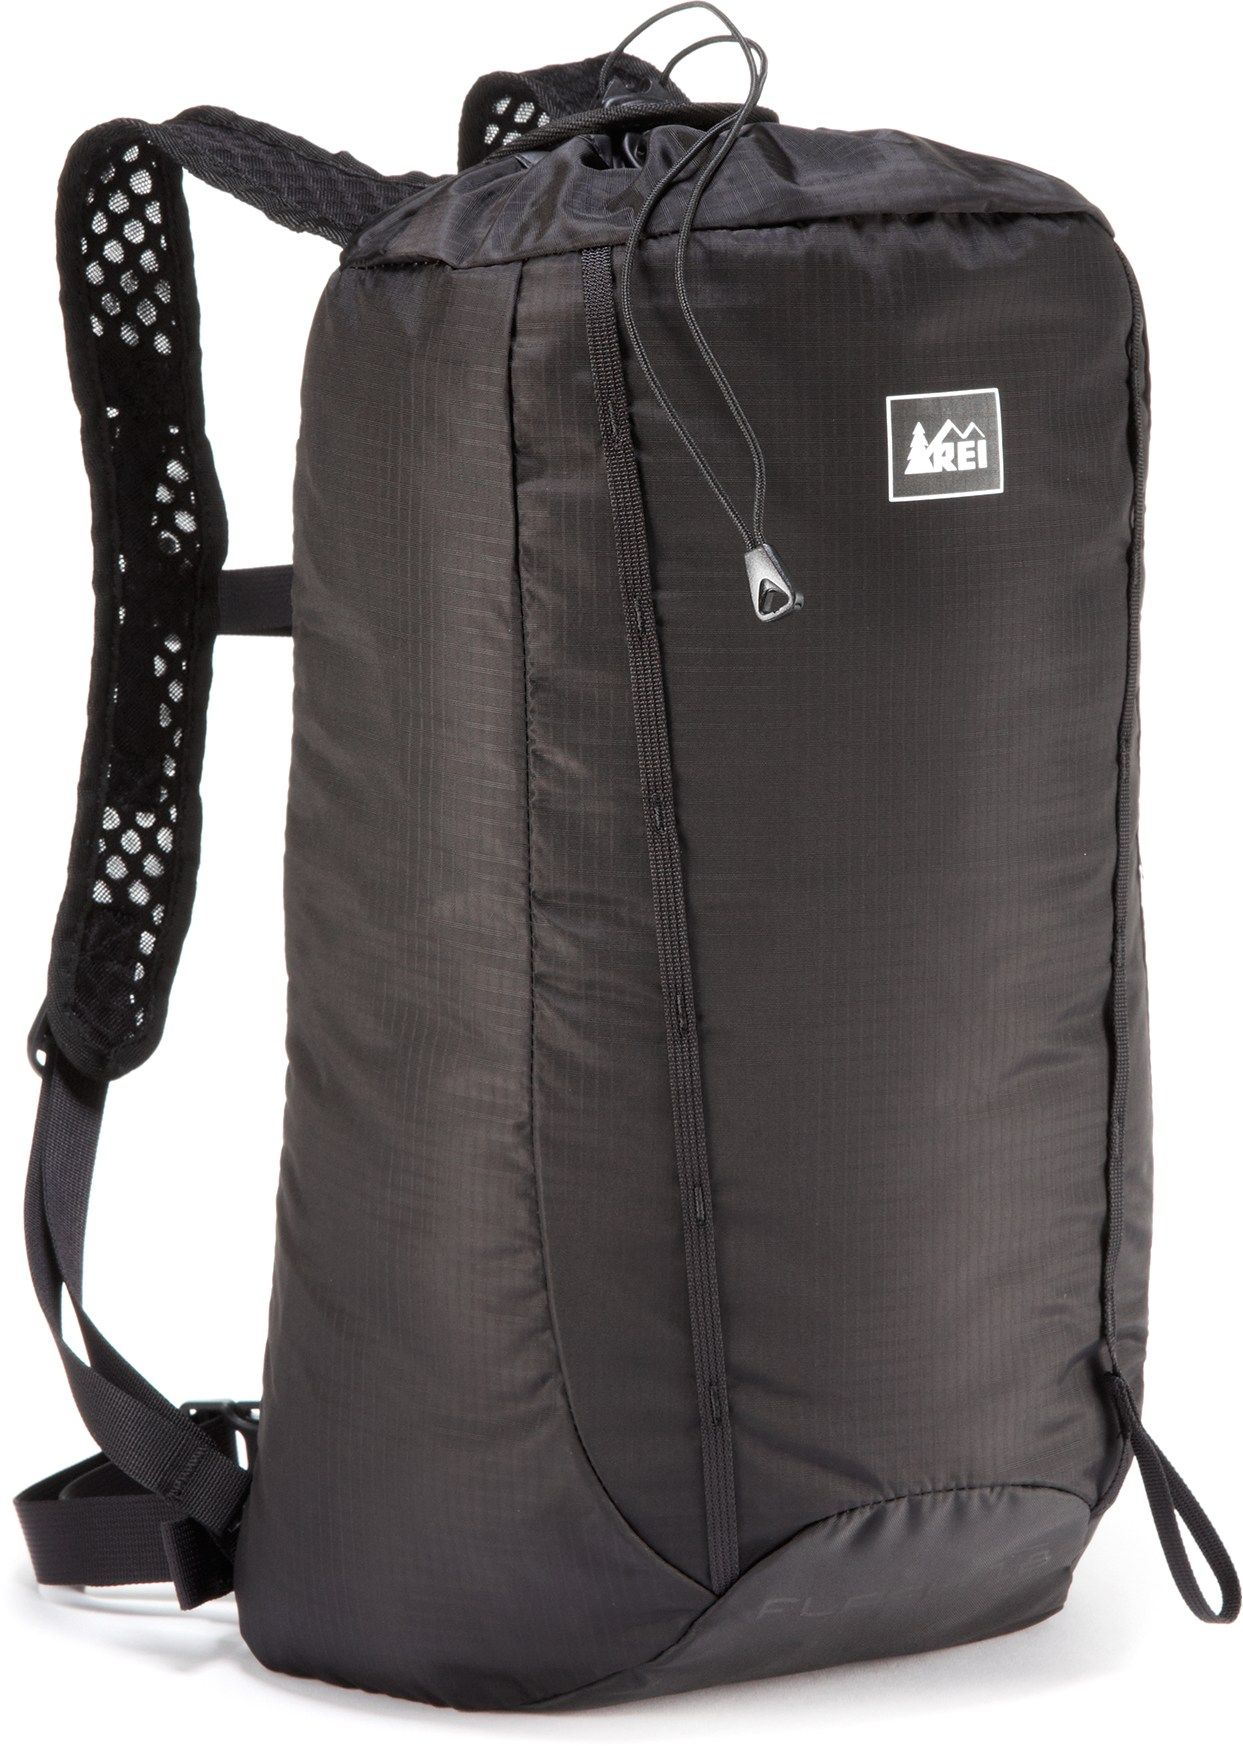 038add30856 REI Flash 18 Pack - Handy in town, on trails and for short hikes away from  basecamp, this little pack cleverly converts into a stuff sack when you  turn it ...